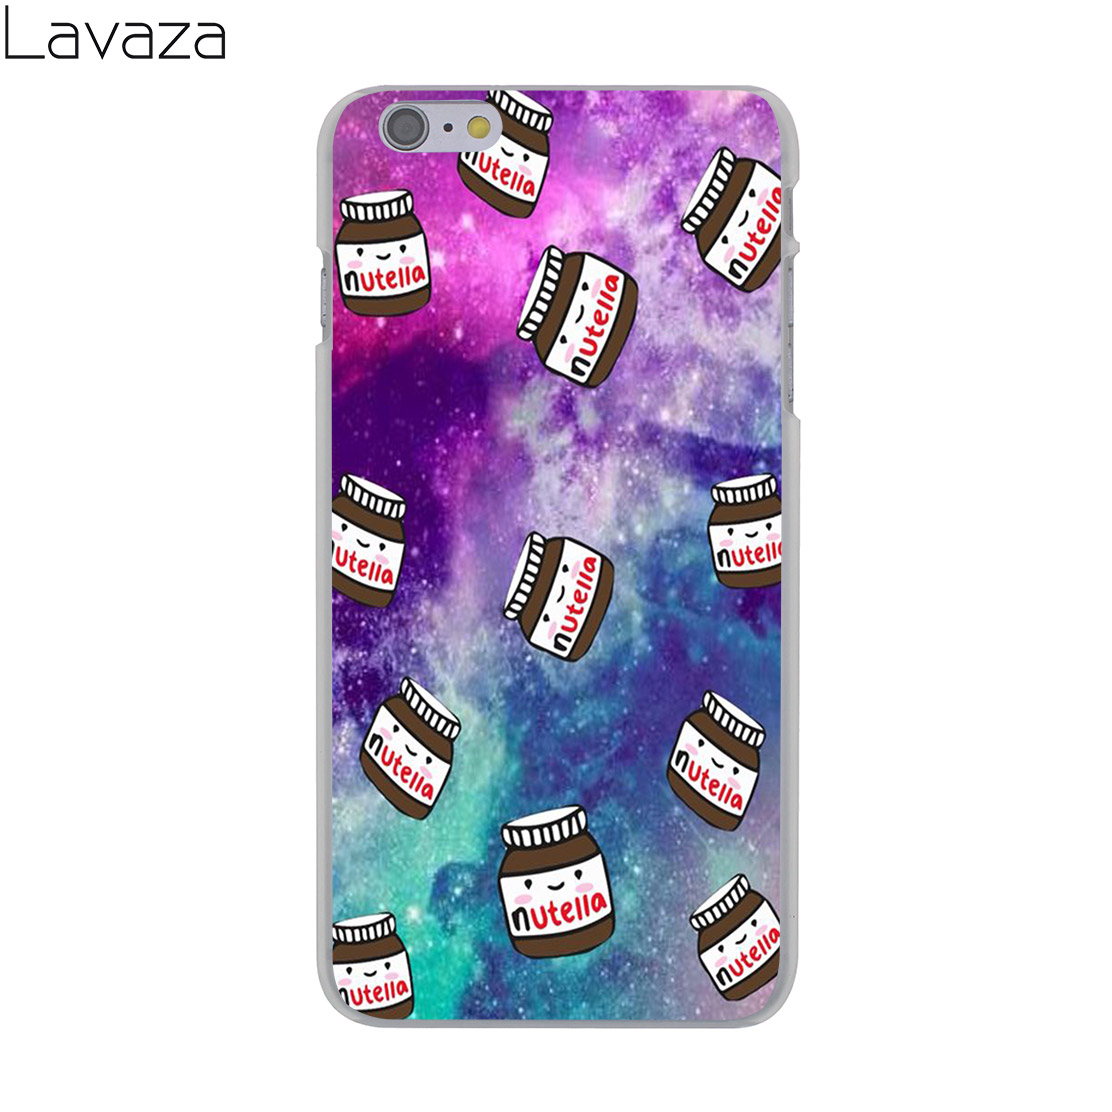 Exceptionnel Lavaza chocolate Food Tumblr Nutella Hard Cover Case for Apple  ZM32